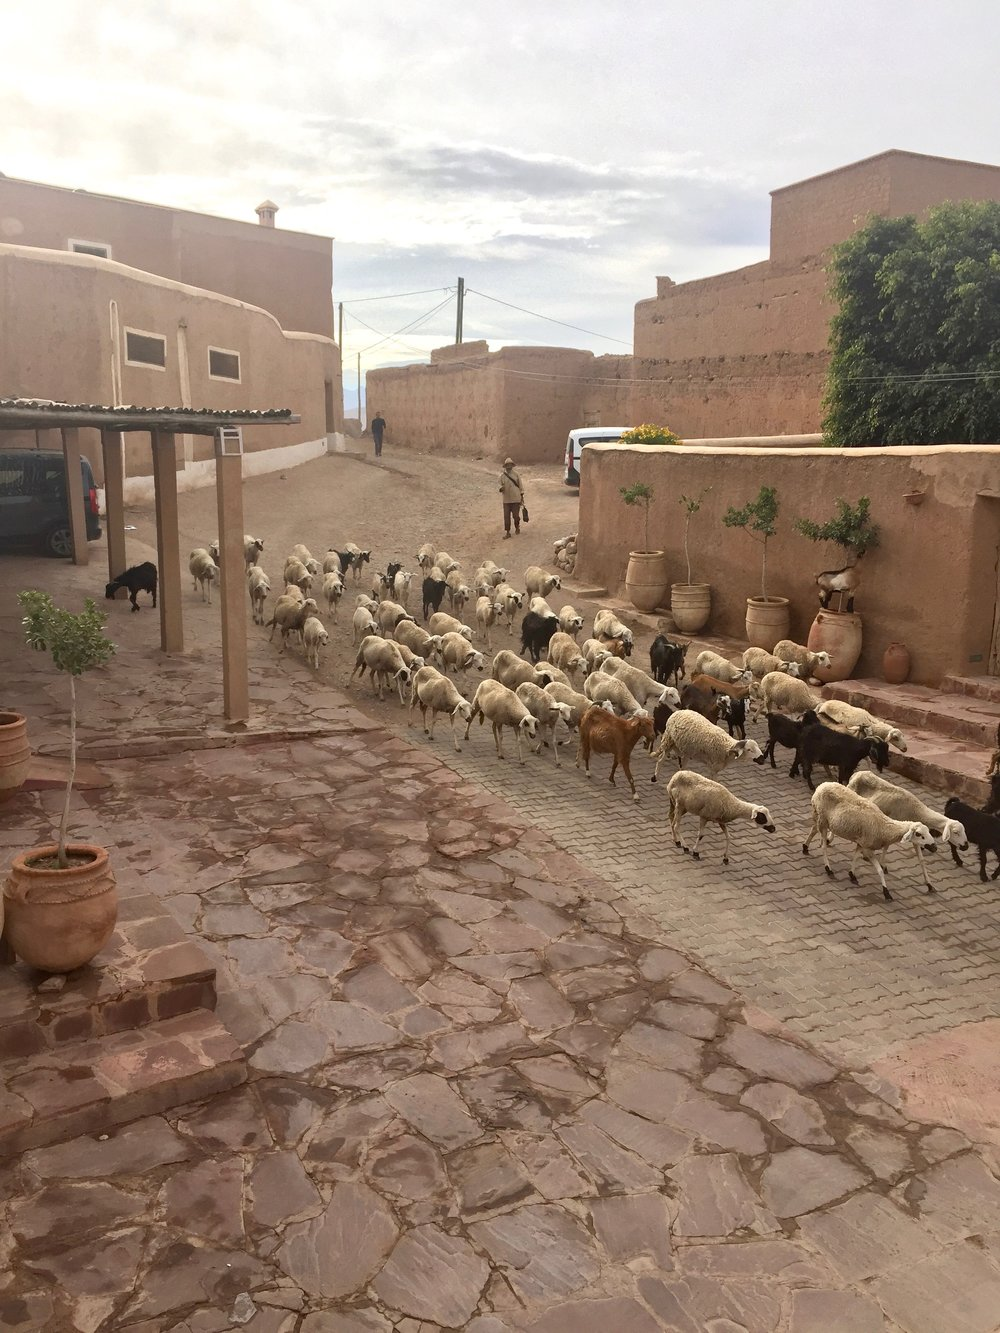 A berber village outside Marrakech